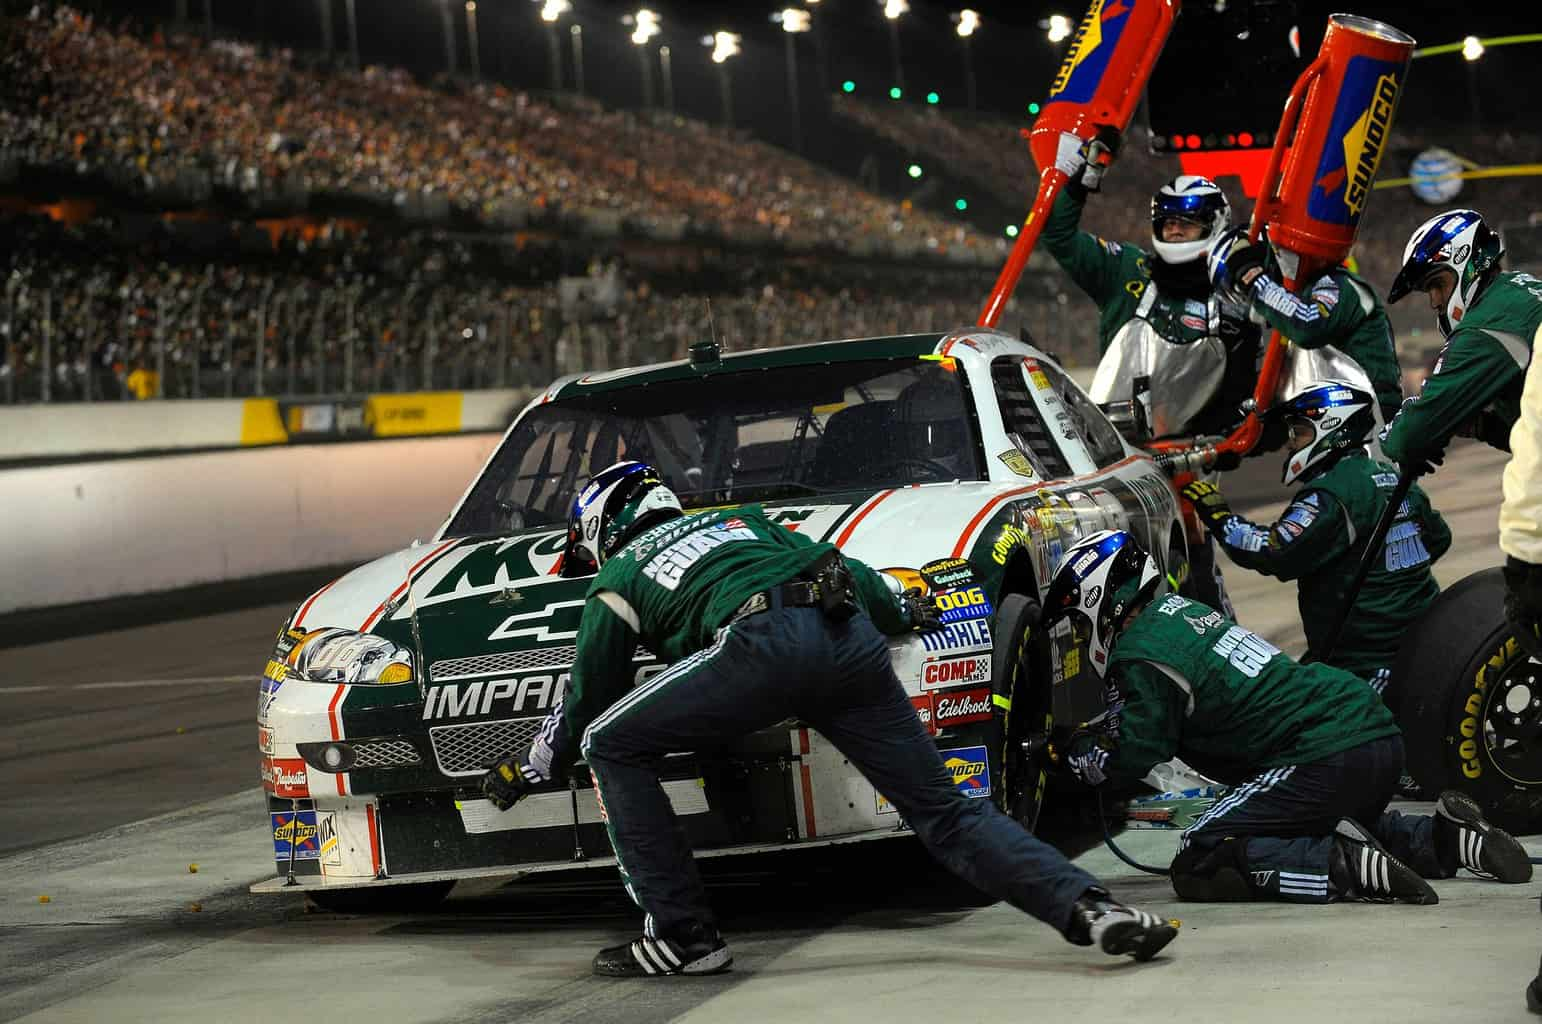 Nascar pitstop mechanic is seen using an impact wrench